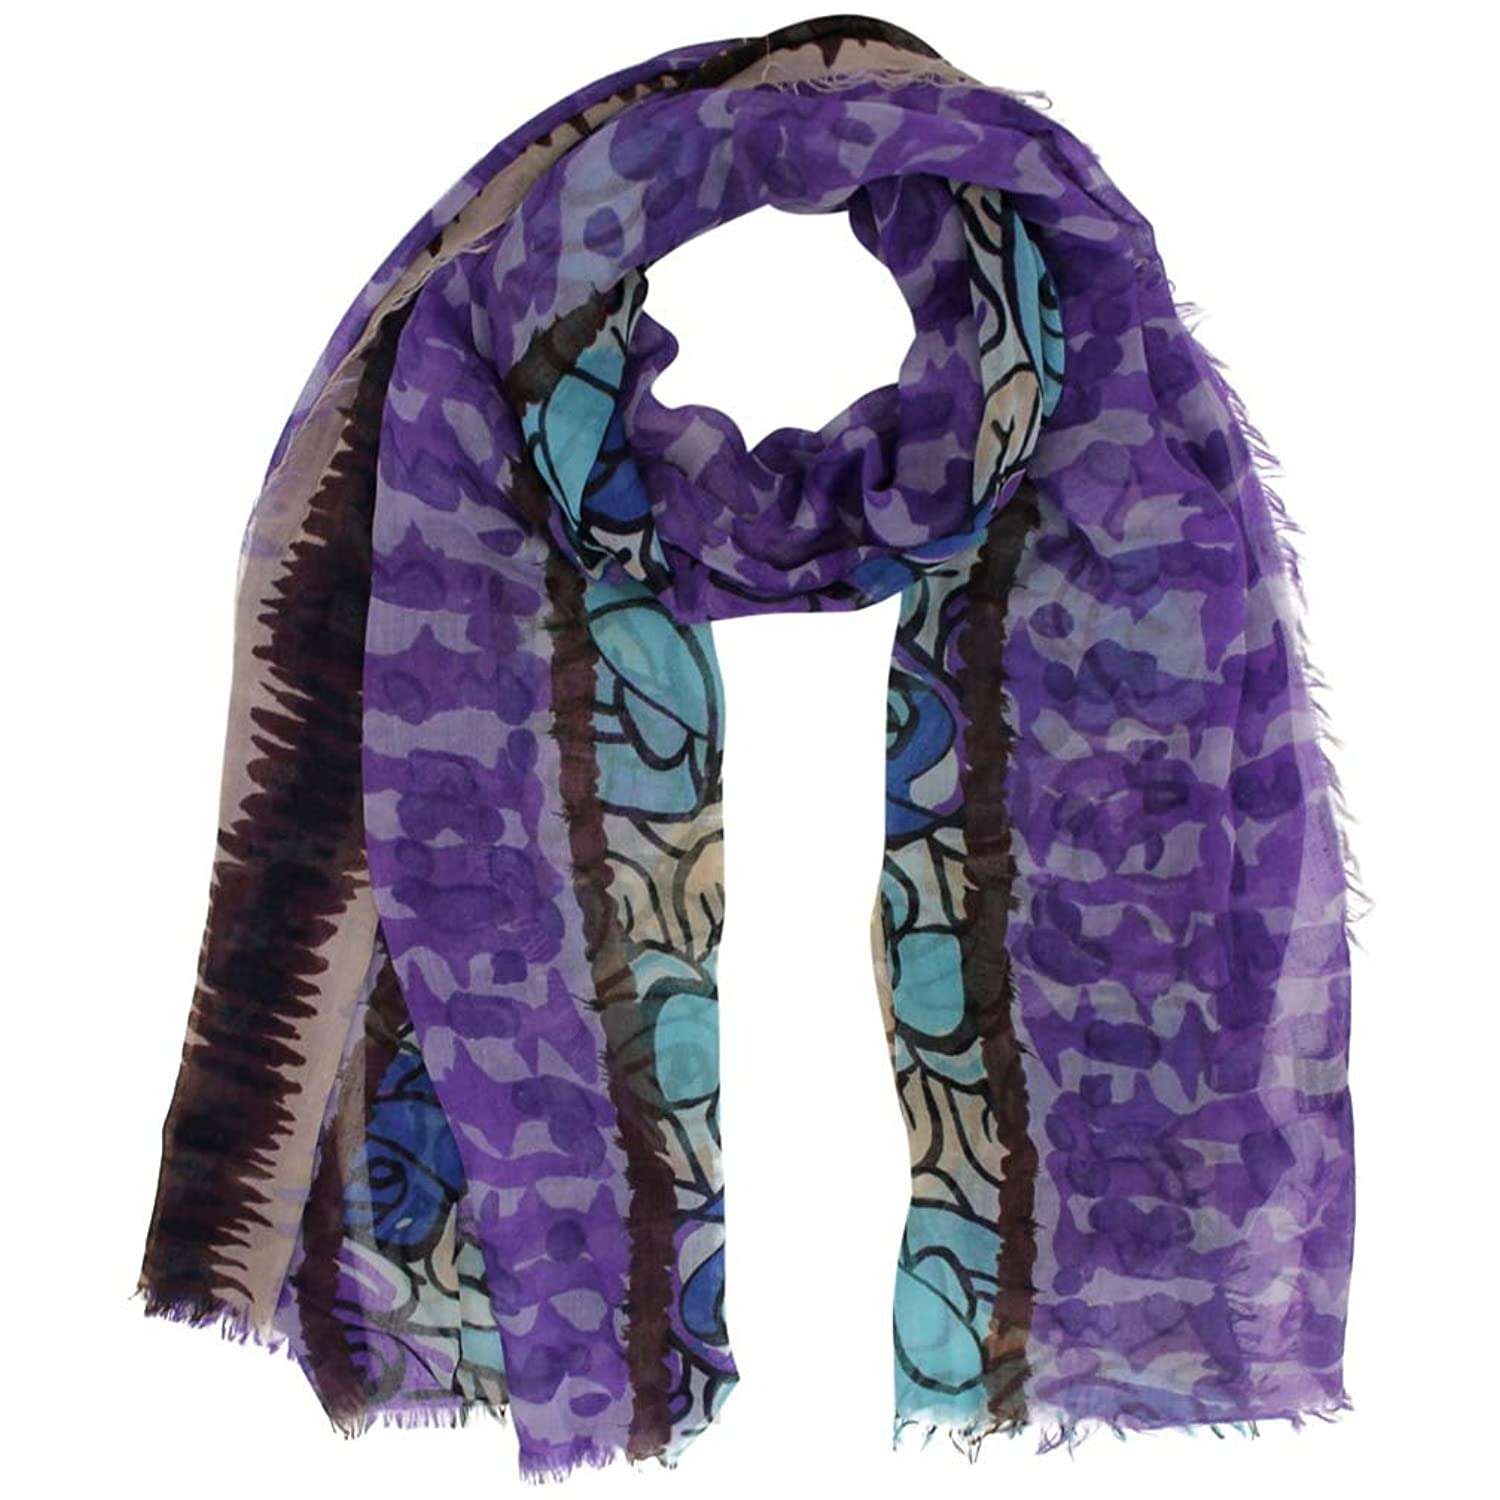 Luxury Divas Sheer Multicolor Rose Print Scarf